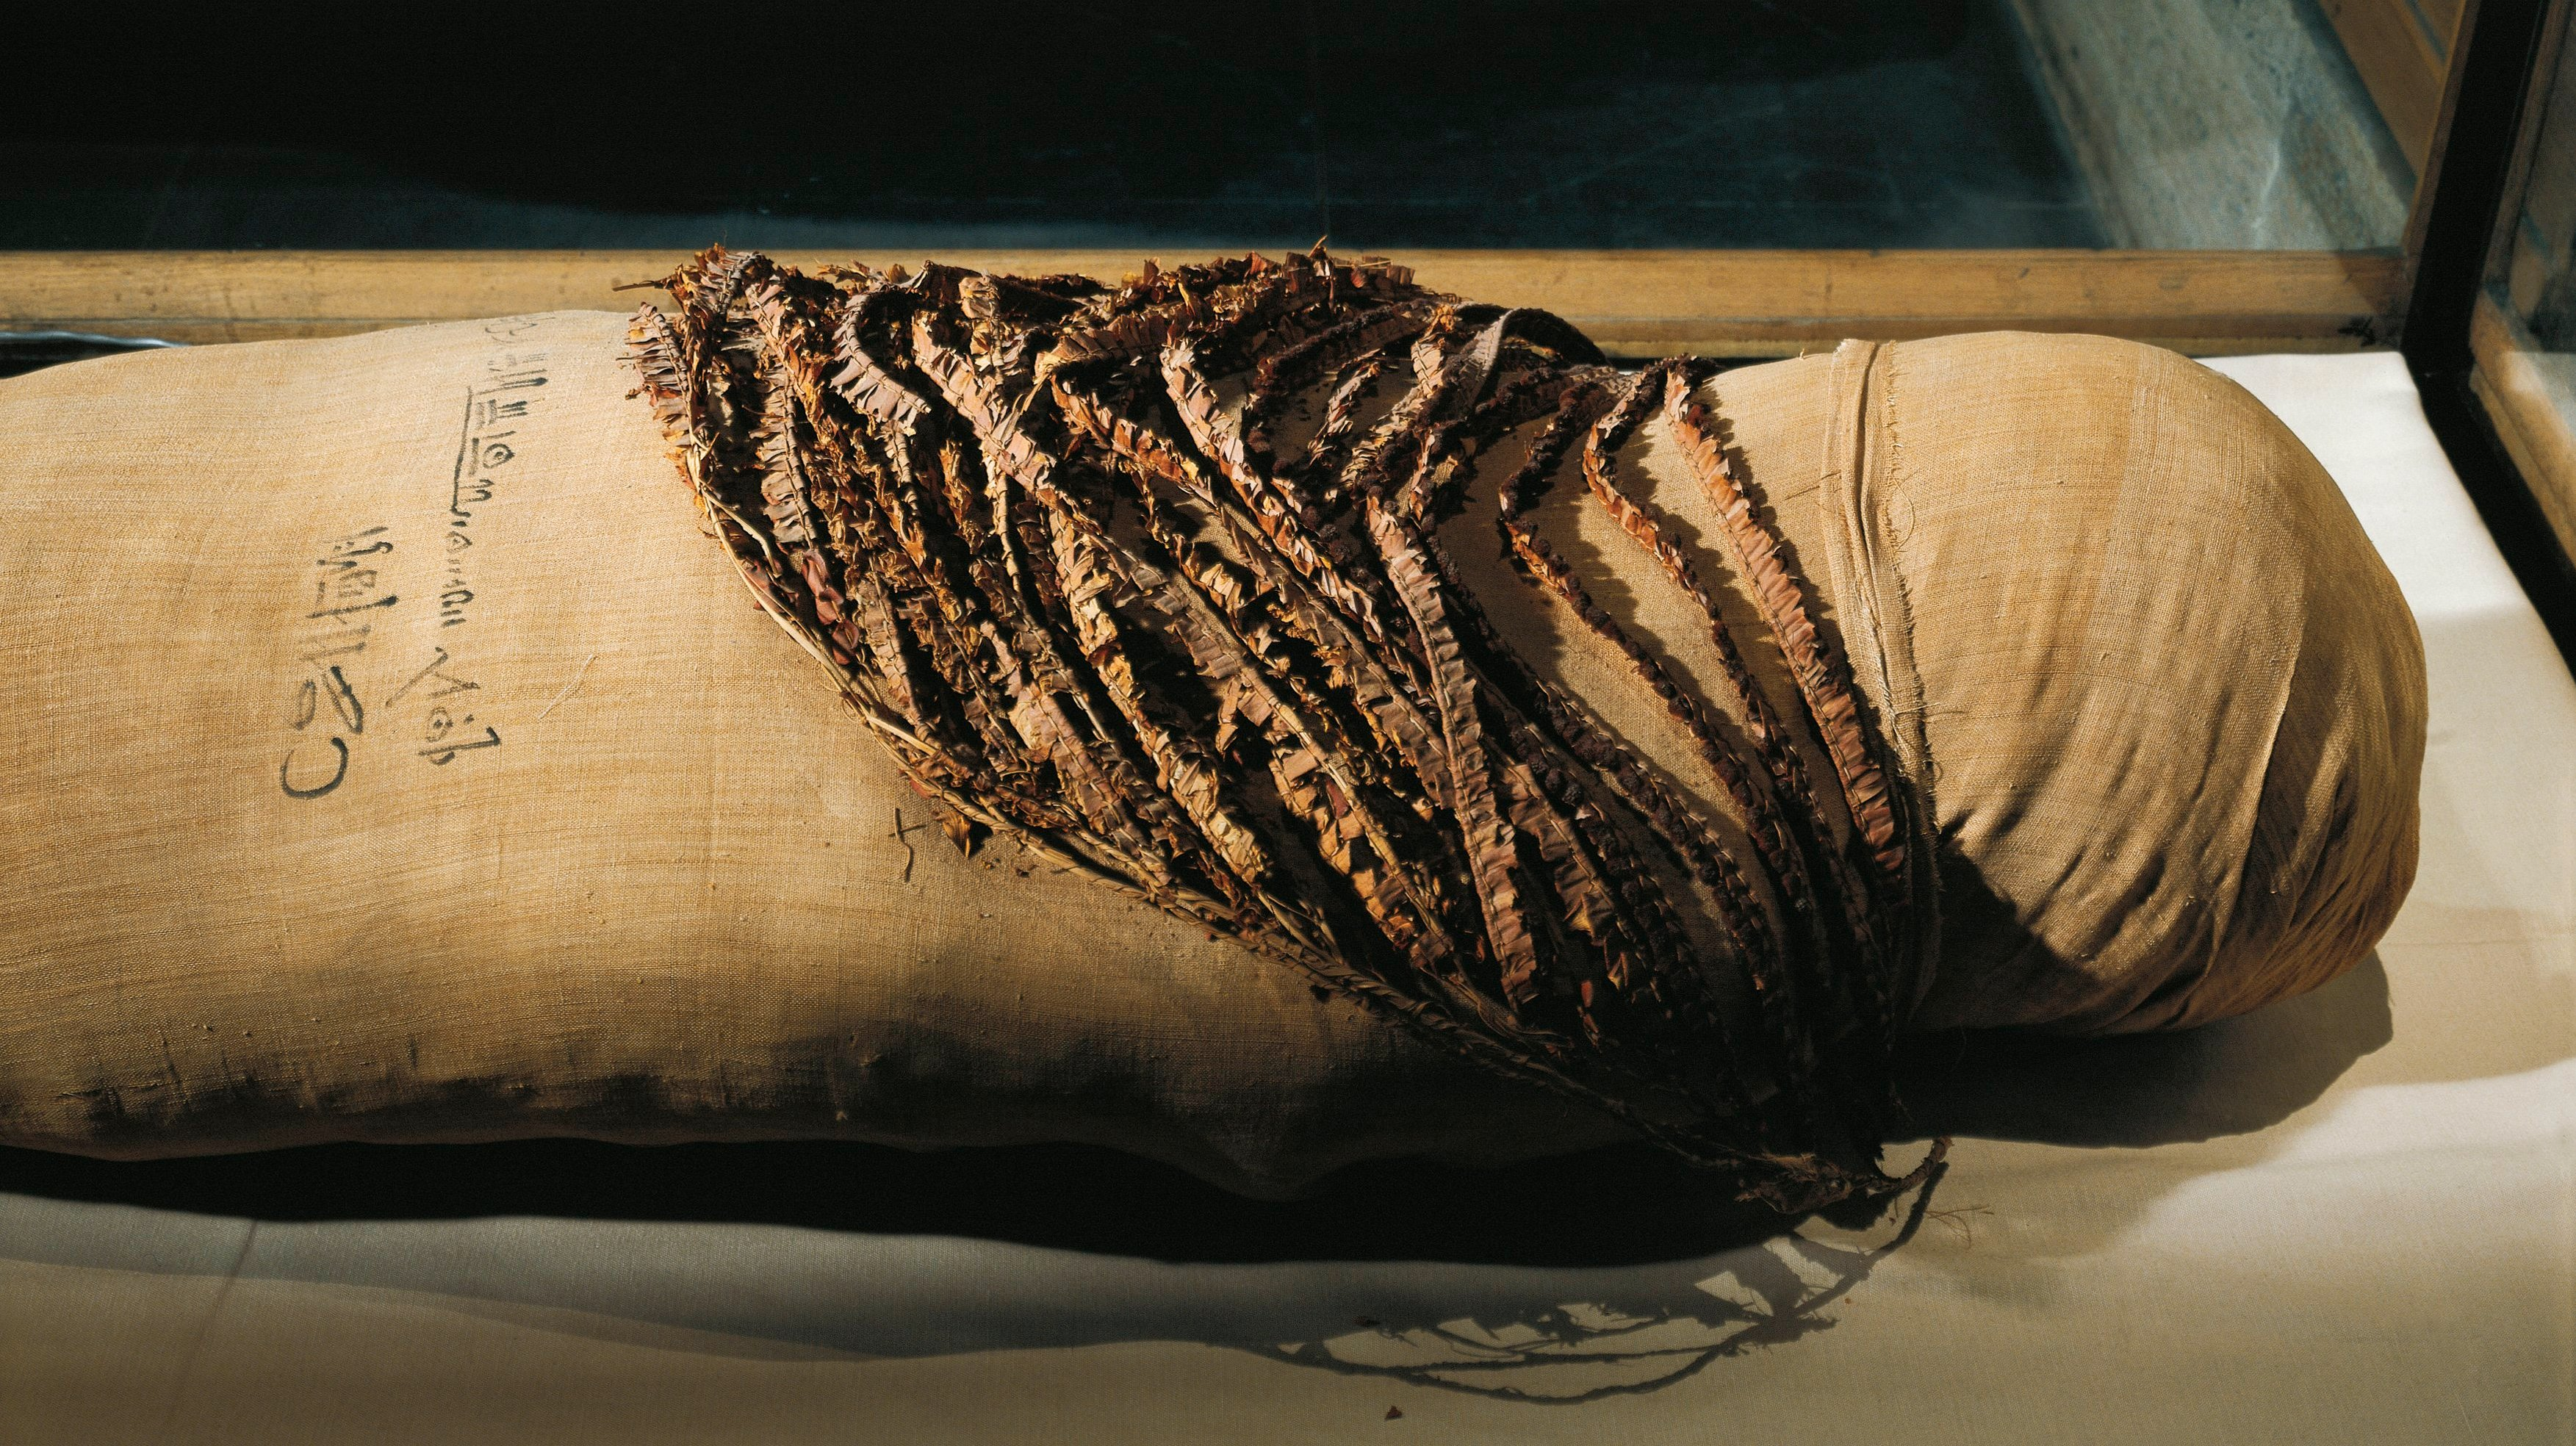 Mummy of Queen Merytamun, wife of Amenhotep, wrapped in linen bandages from the Valley of the Queens